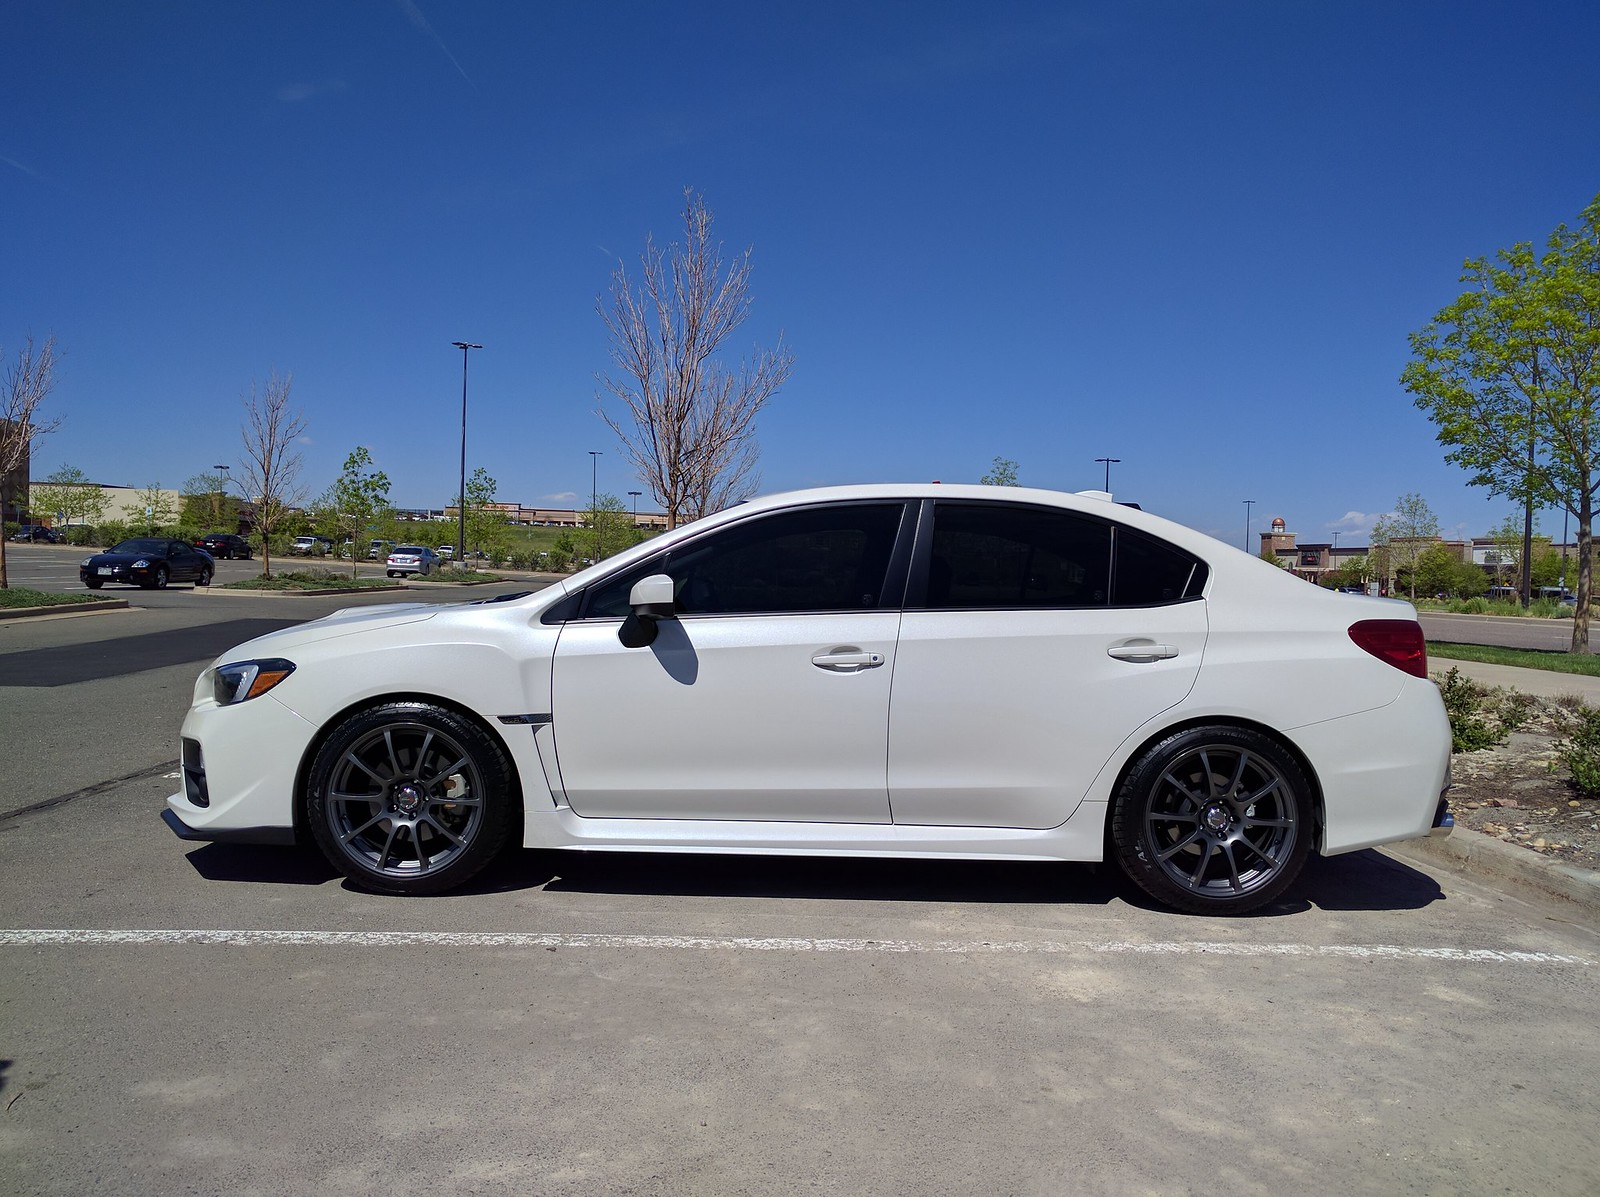 2017 Sti Lowered >> 2015 WRX/STi Aftermarket wheel and tire fitment - Page 233 - NASIOC